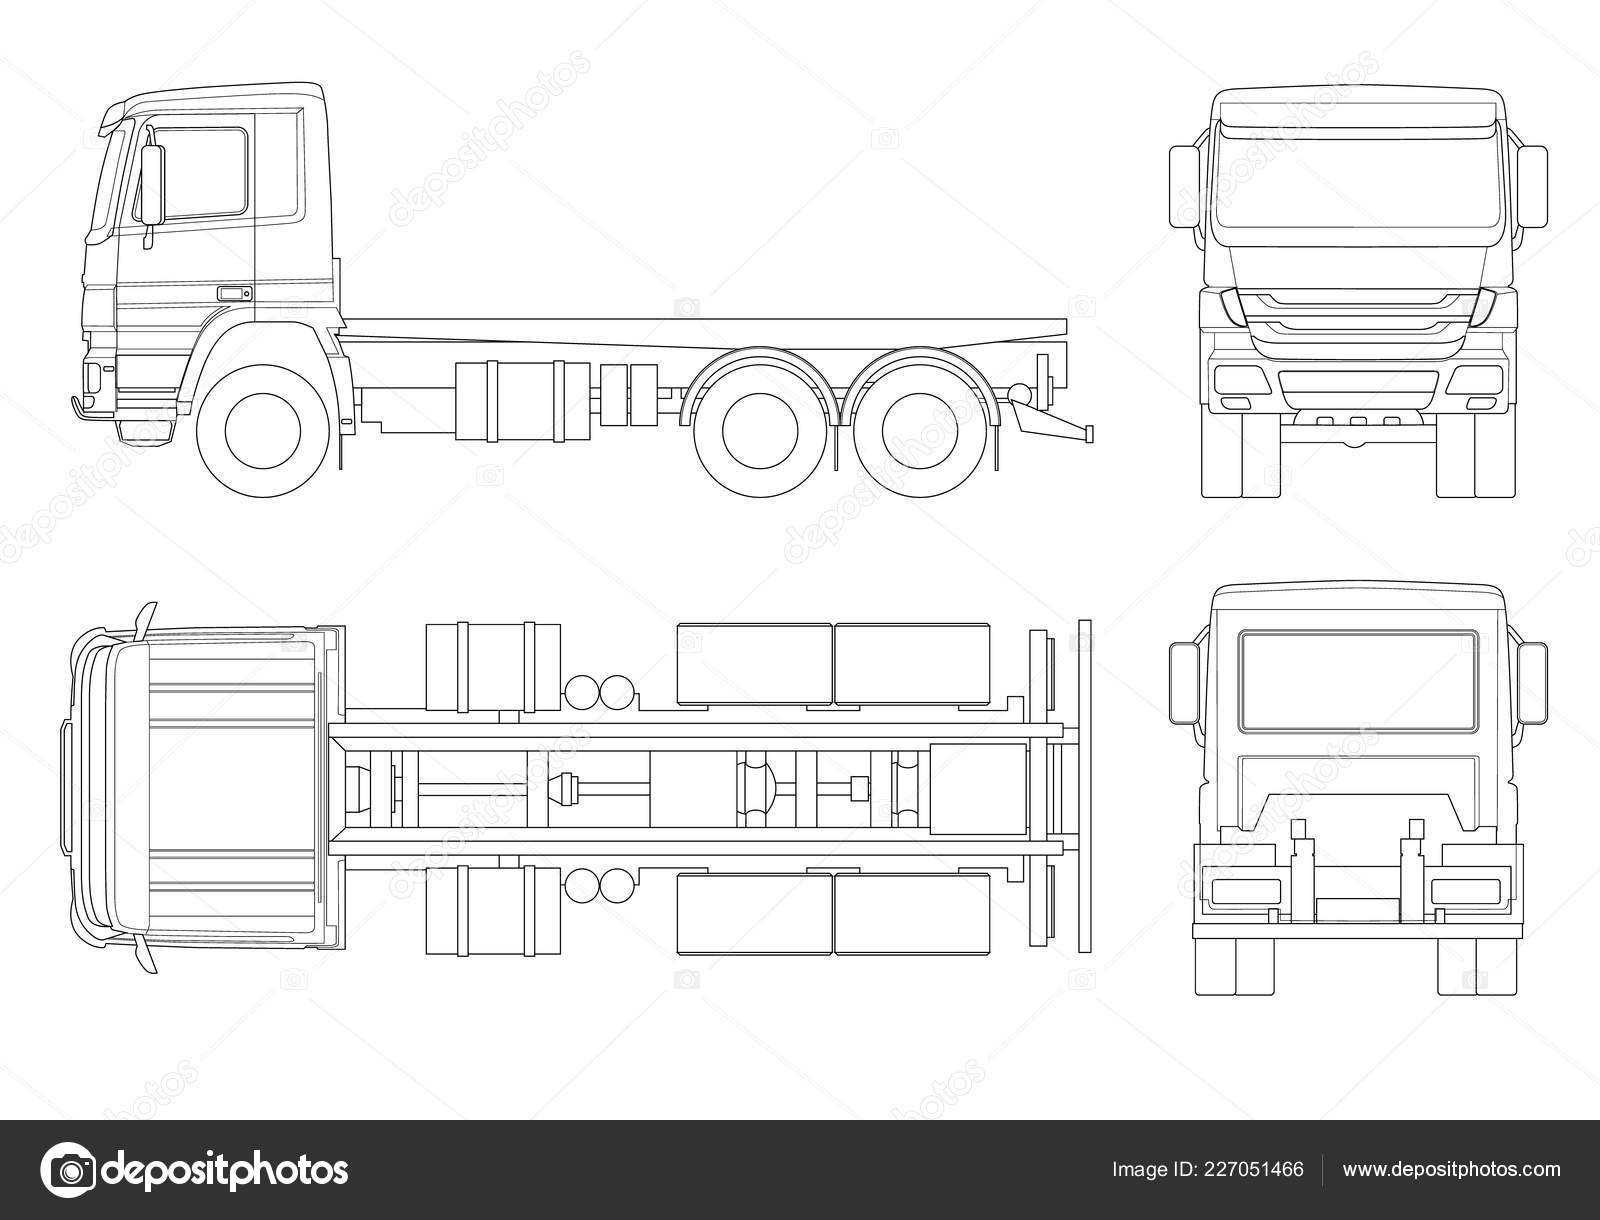 Truck tractor or semi trailer truck in outline combination of a tractor unit and one or more semi trailers to carry freight side front back top view